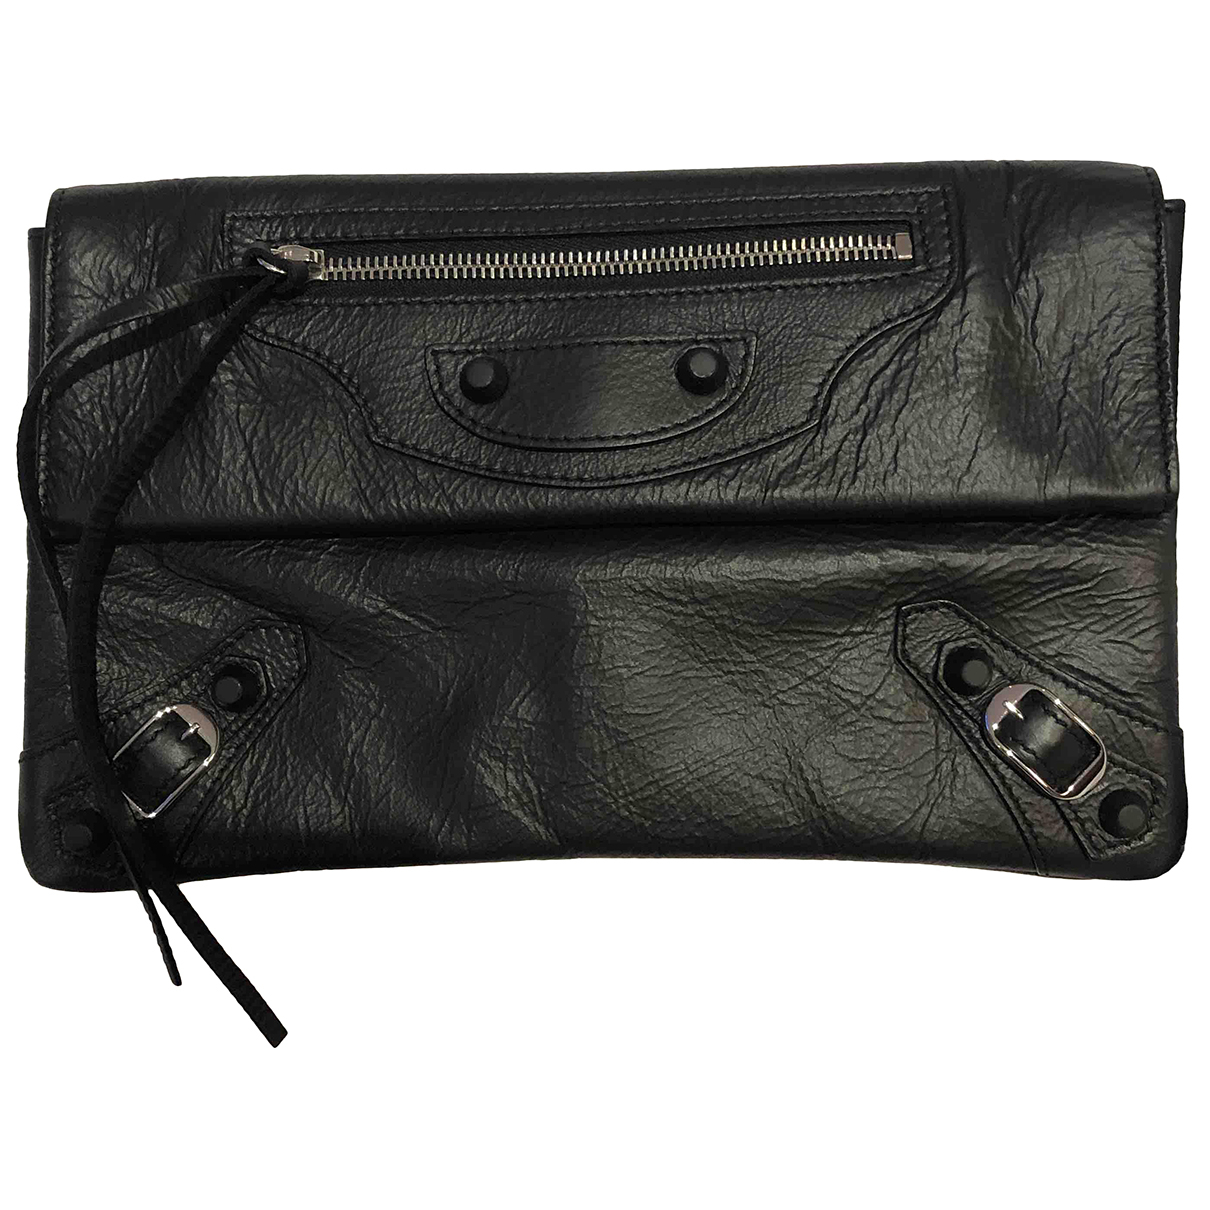 Balenciaga Envelop Clutch in  Schwarz Leder